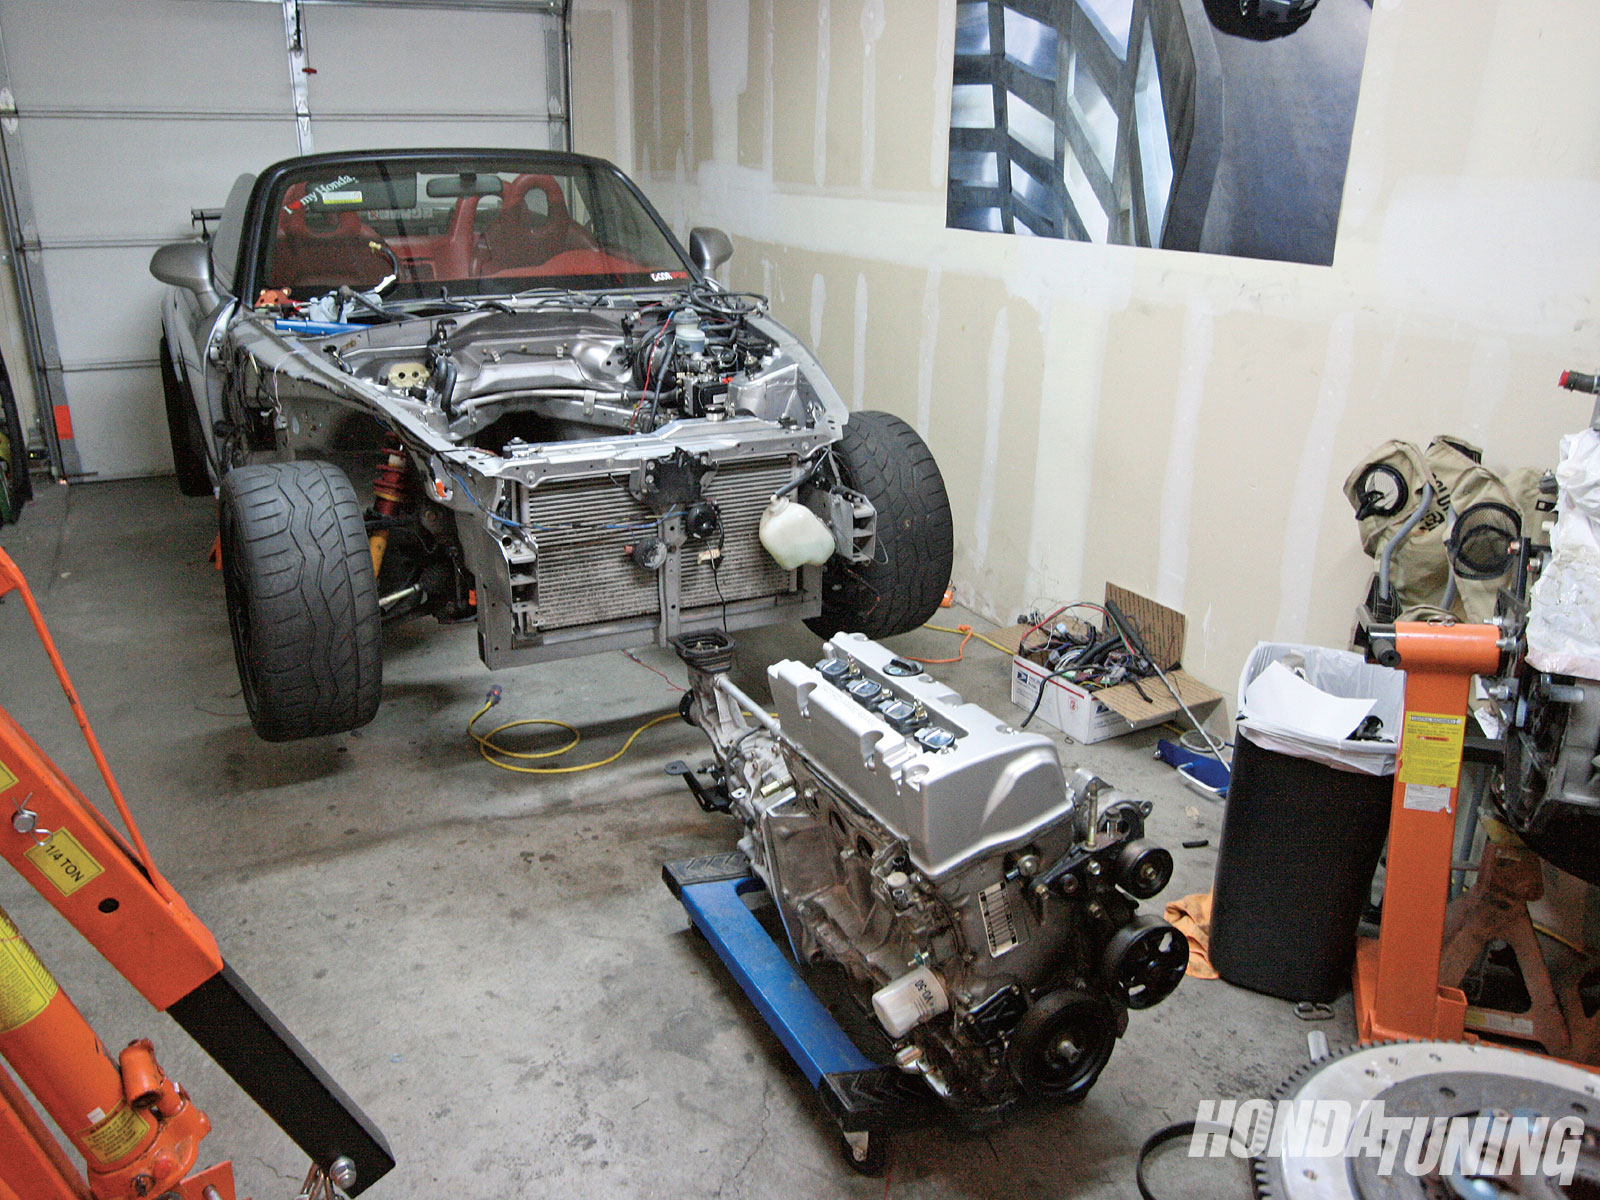 small resolution of htup 1010 01 o k24 swap into s2000 chassis s2000 chassis htup 1010 k24 into s2000 chassis swap